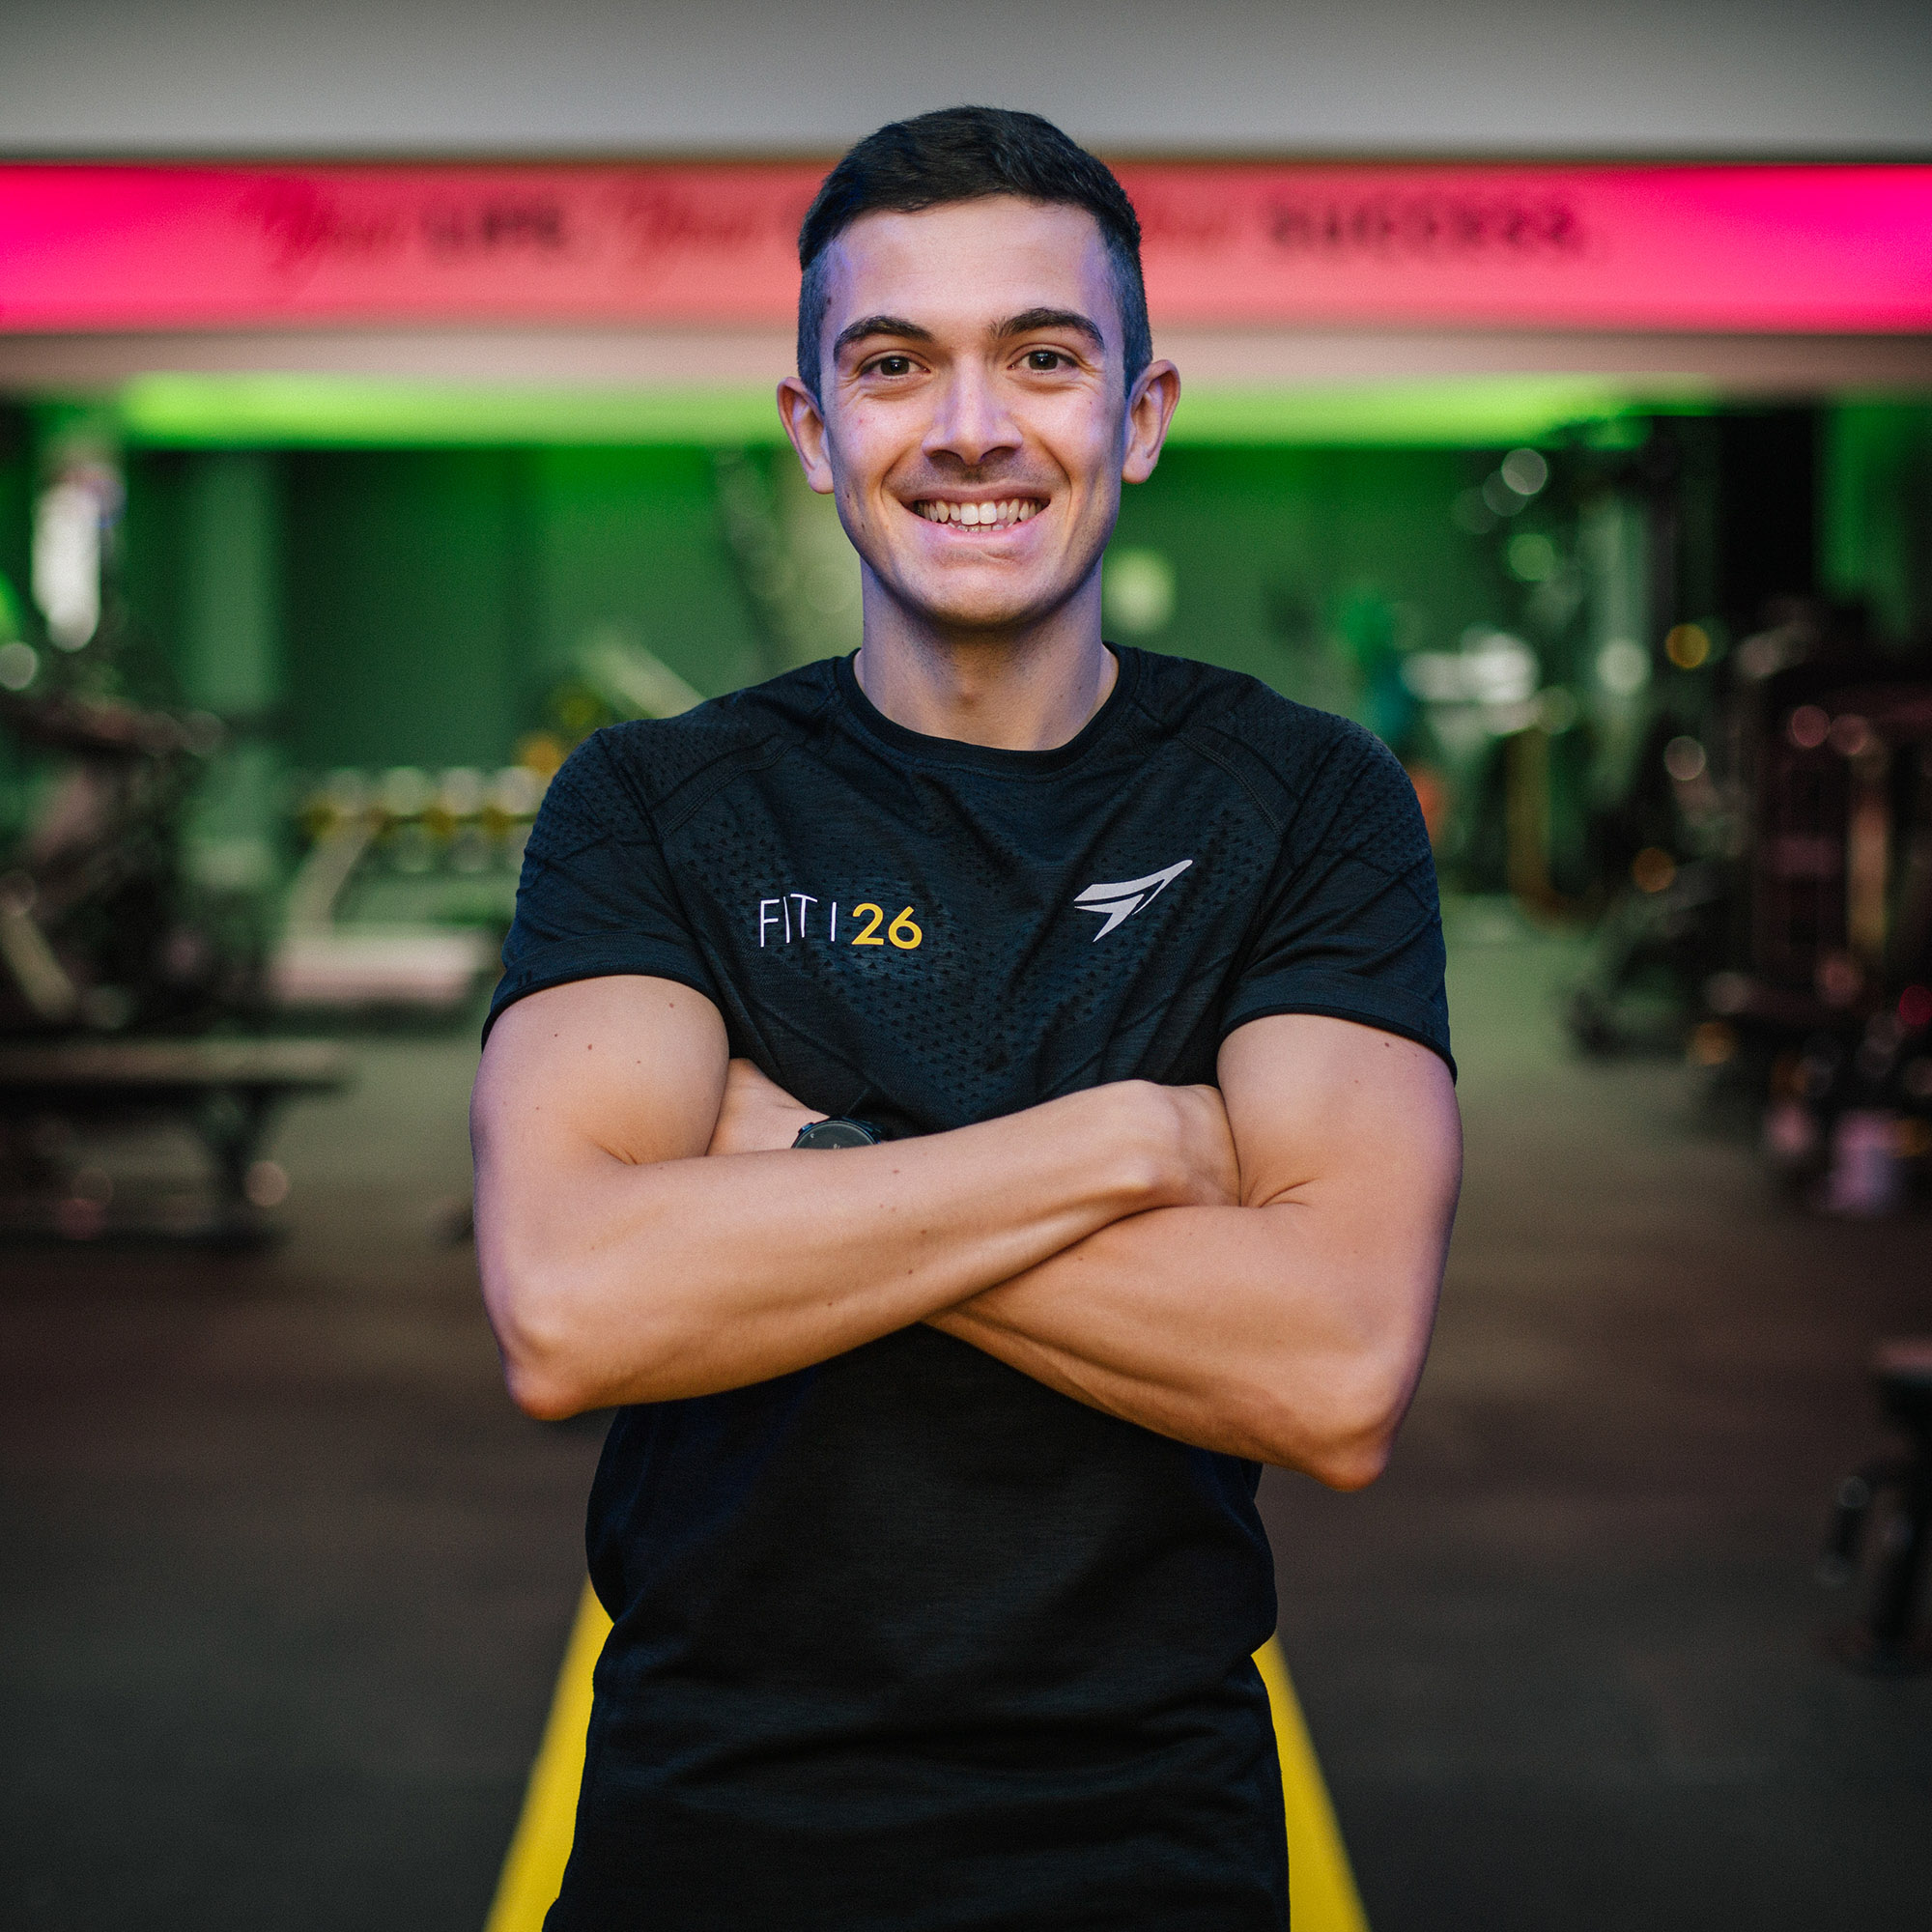 Fit26 Personal Trainer - Josh